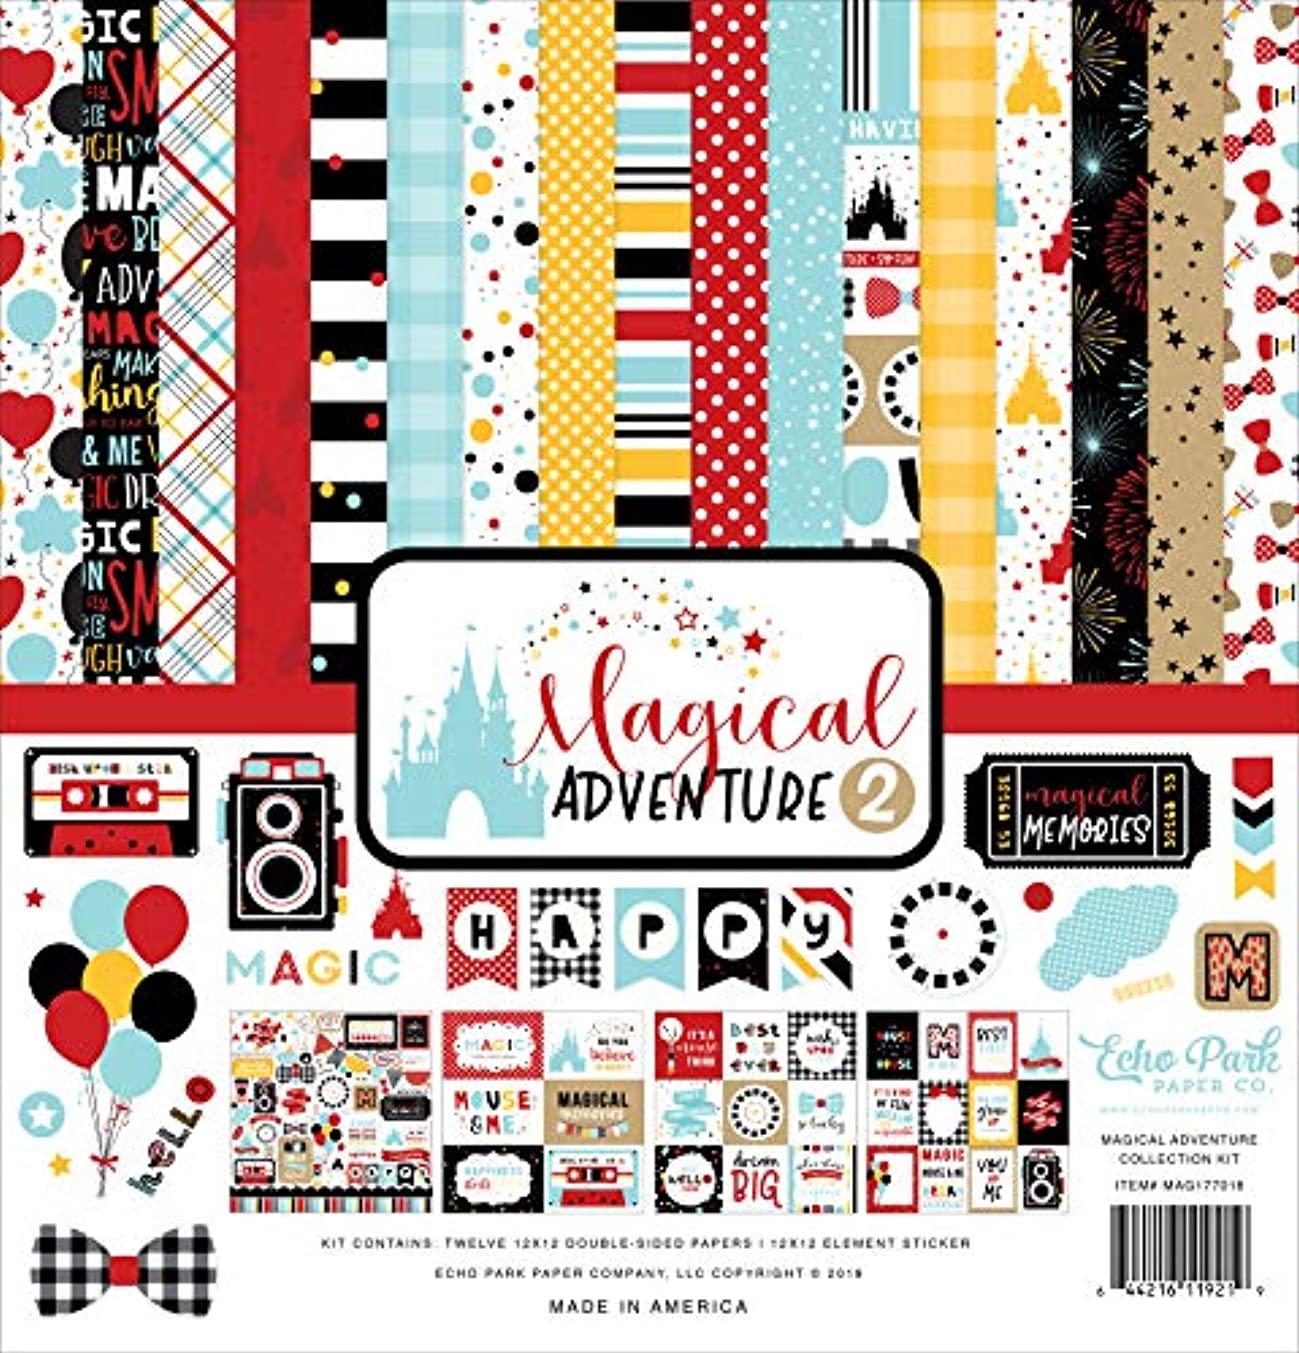 Echo Park Paper Company MAG177016A Magical Adventure 2 Collection Kit Paper red, Yellow, Teal, Black